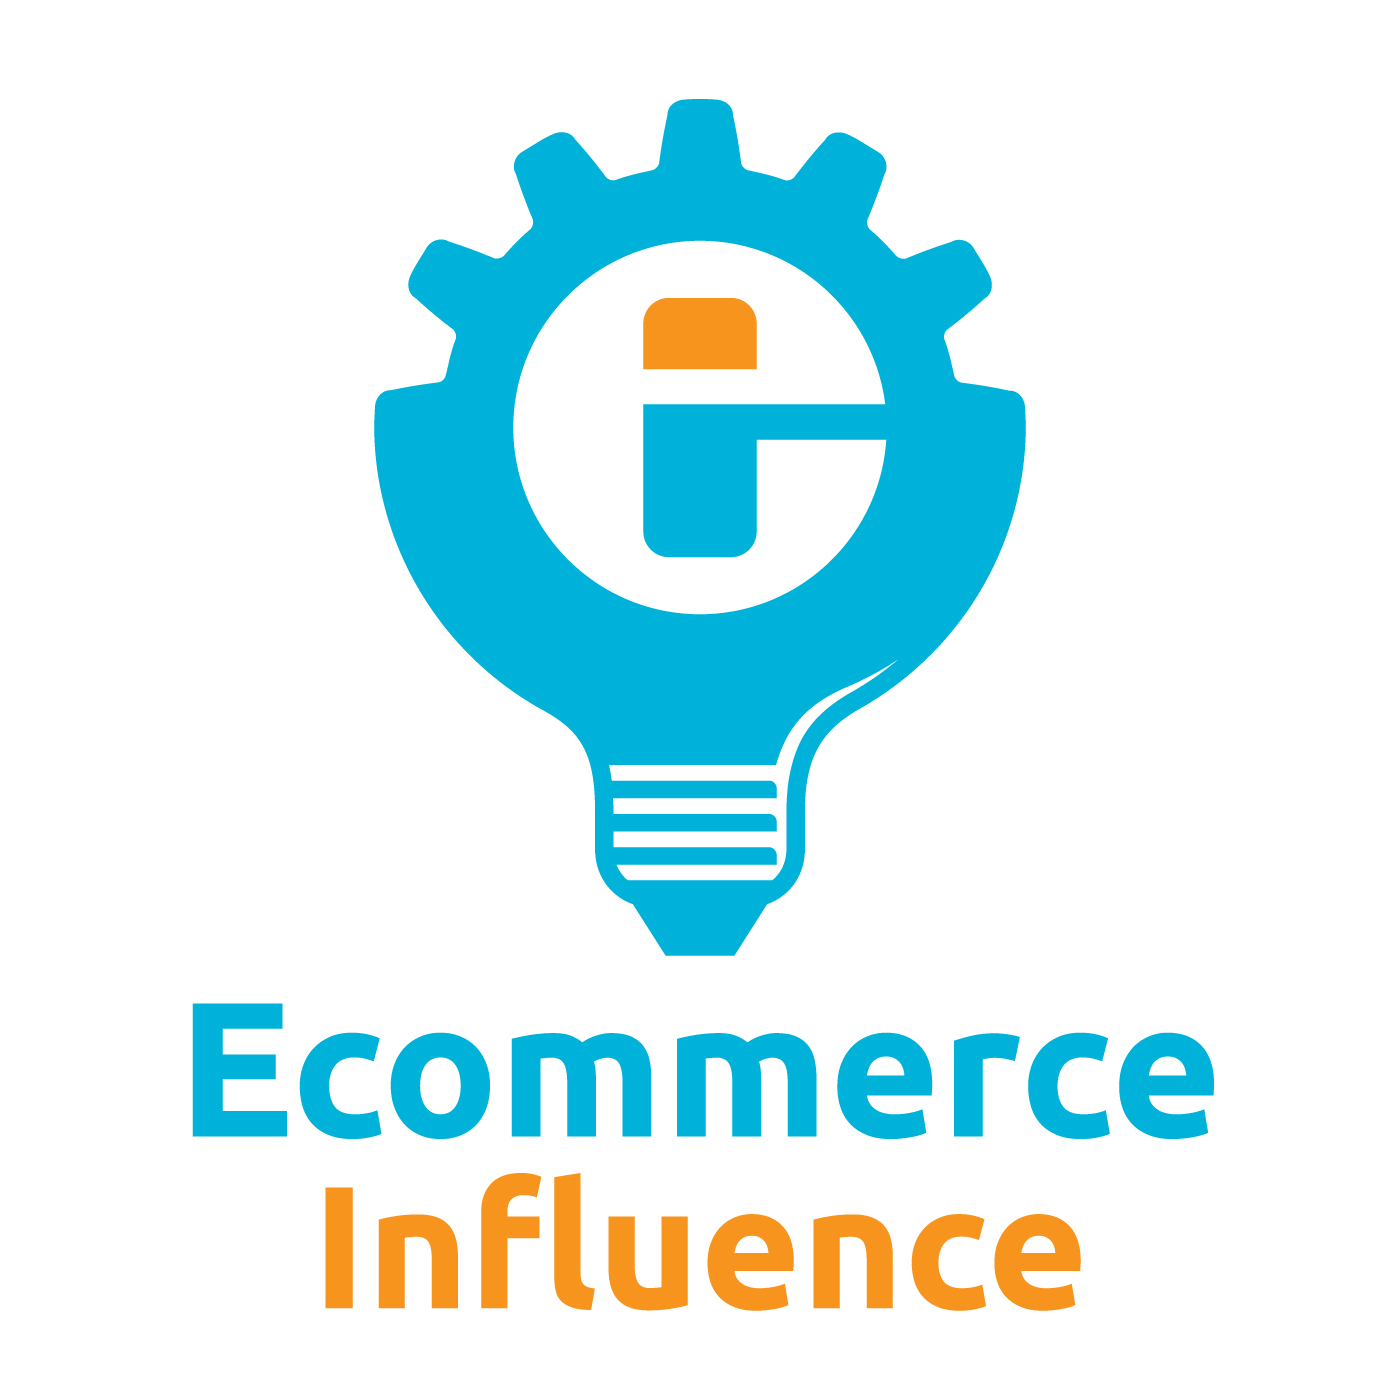 The Ecommerce Influence Podcast: Advanced Acquisition and Retention Strategies for Fast-Growing Online Brands